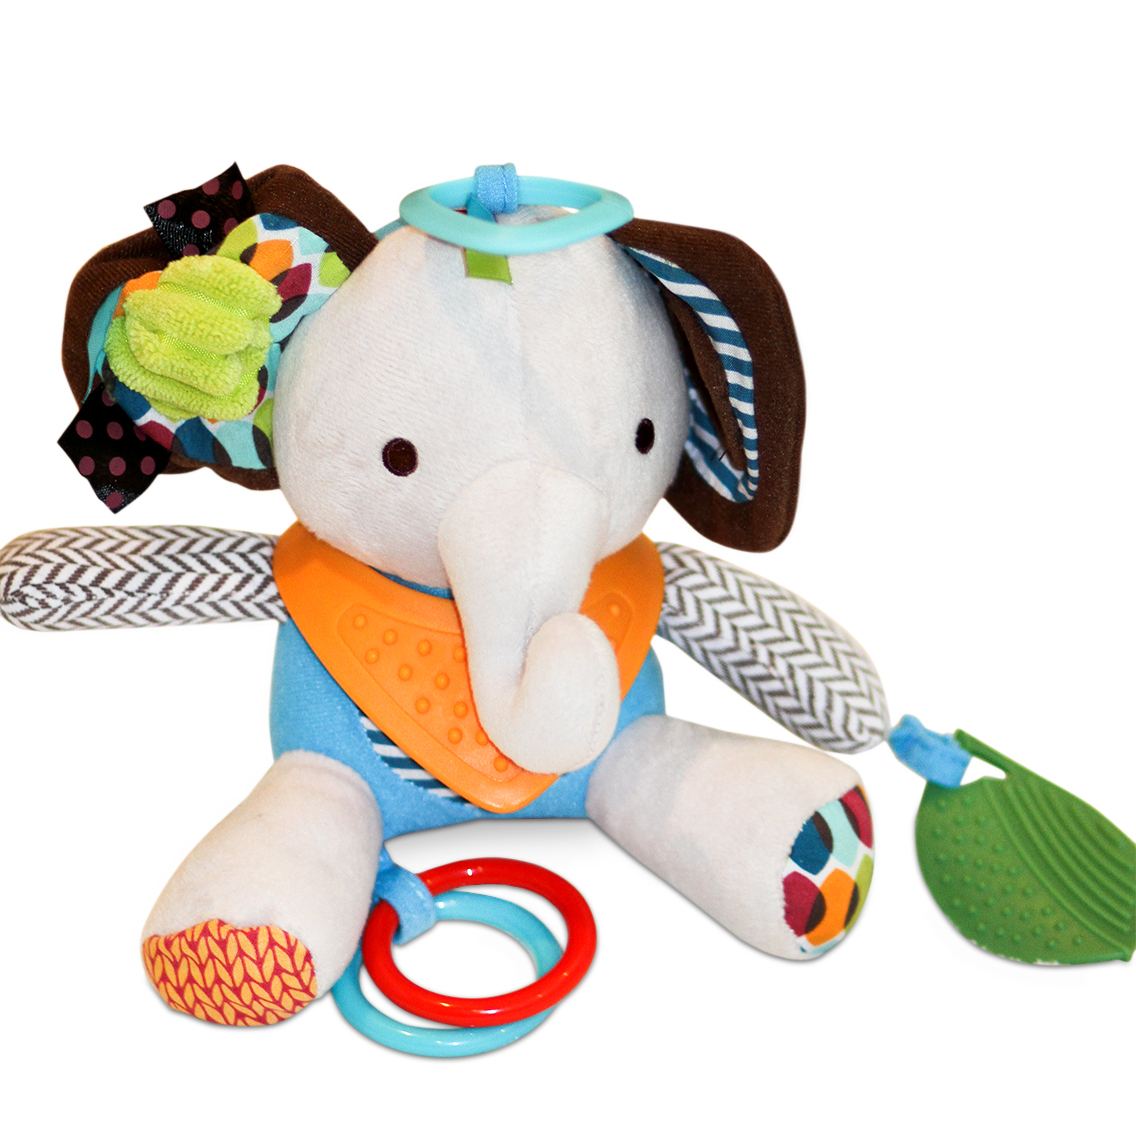 Ellie The Elephant Teether Plush Toy Relief From Teething Pain